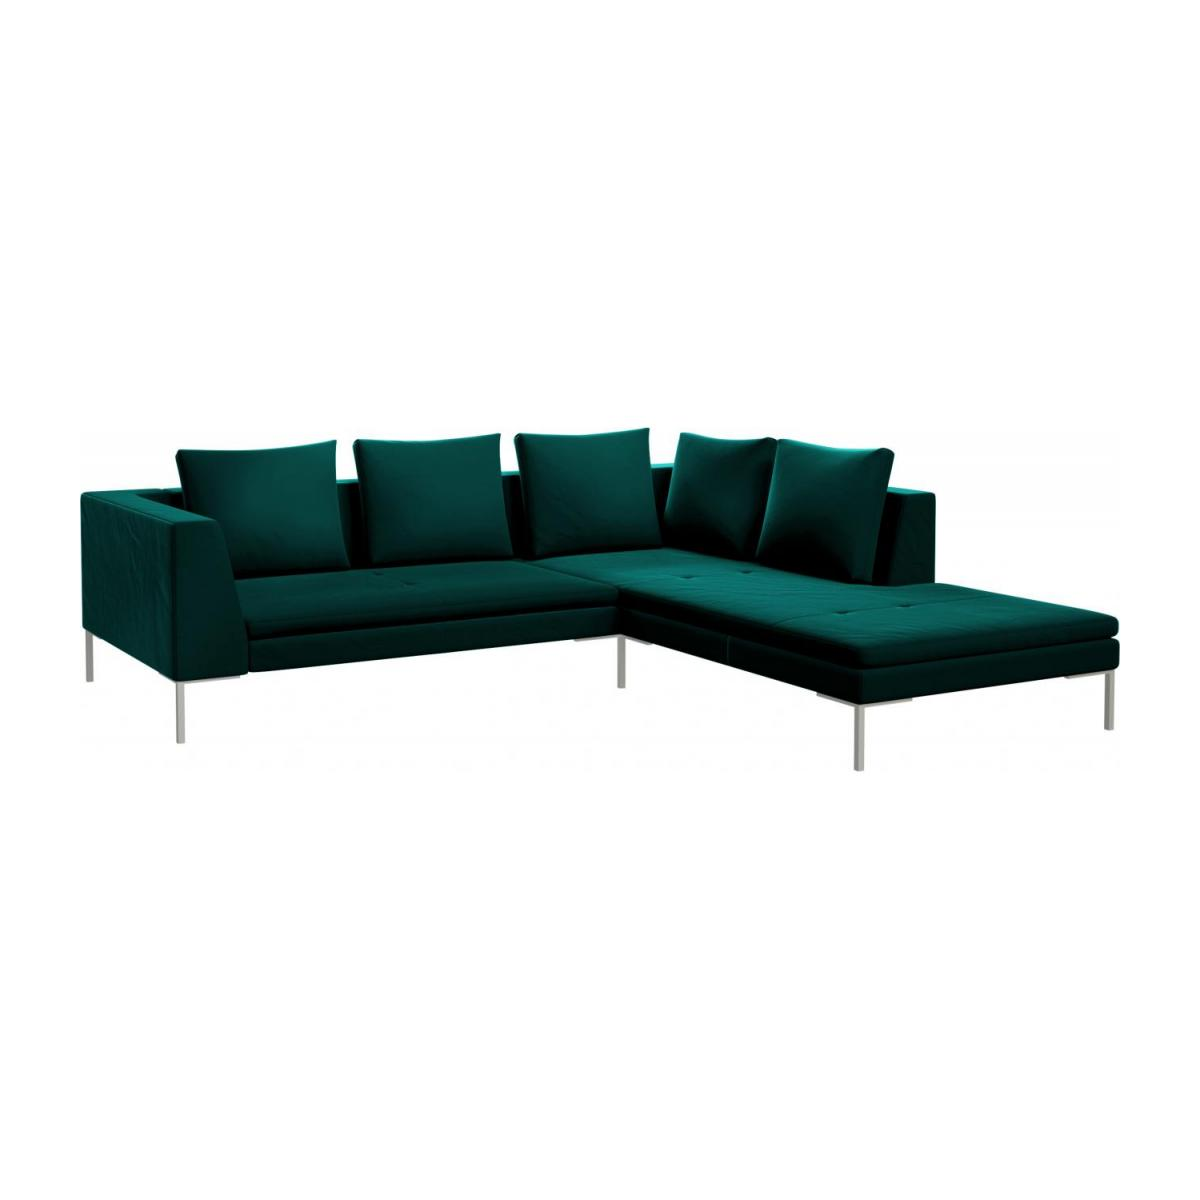 Couch Petrol Montino 2 Seater Sofa With Chaise Longue On The Right In Super Velvet Fabric Petrol Blue